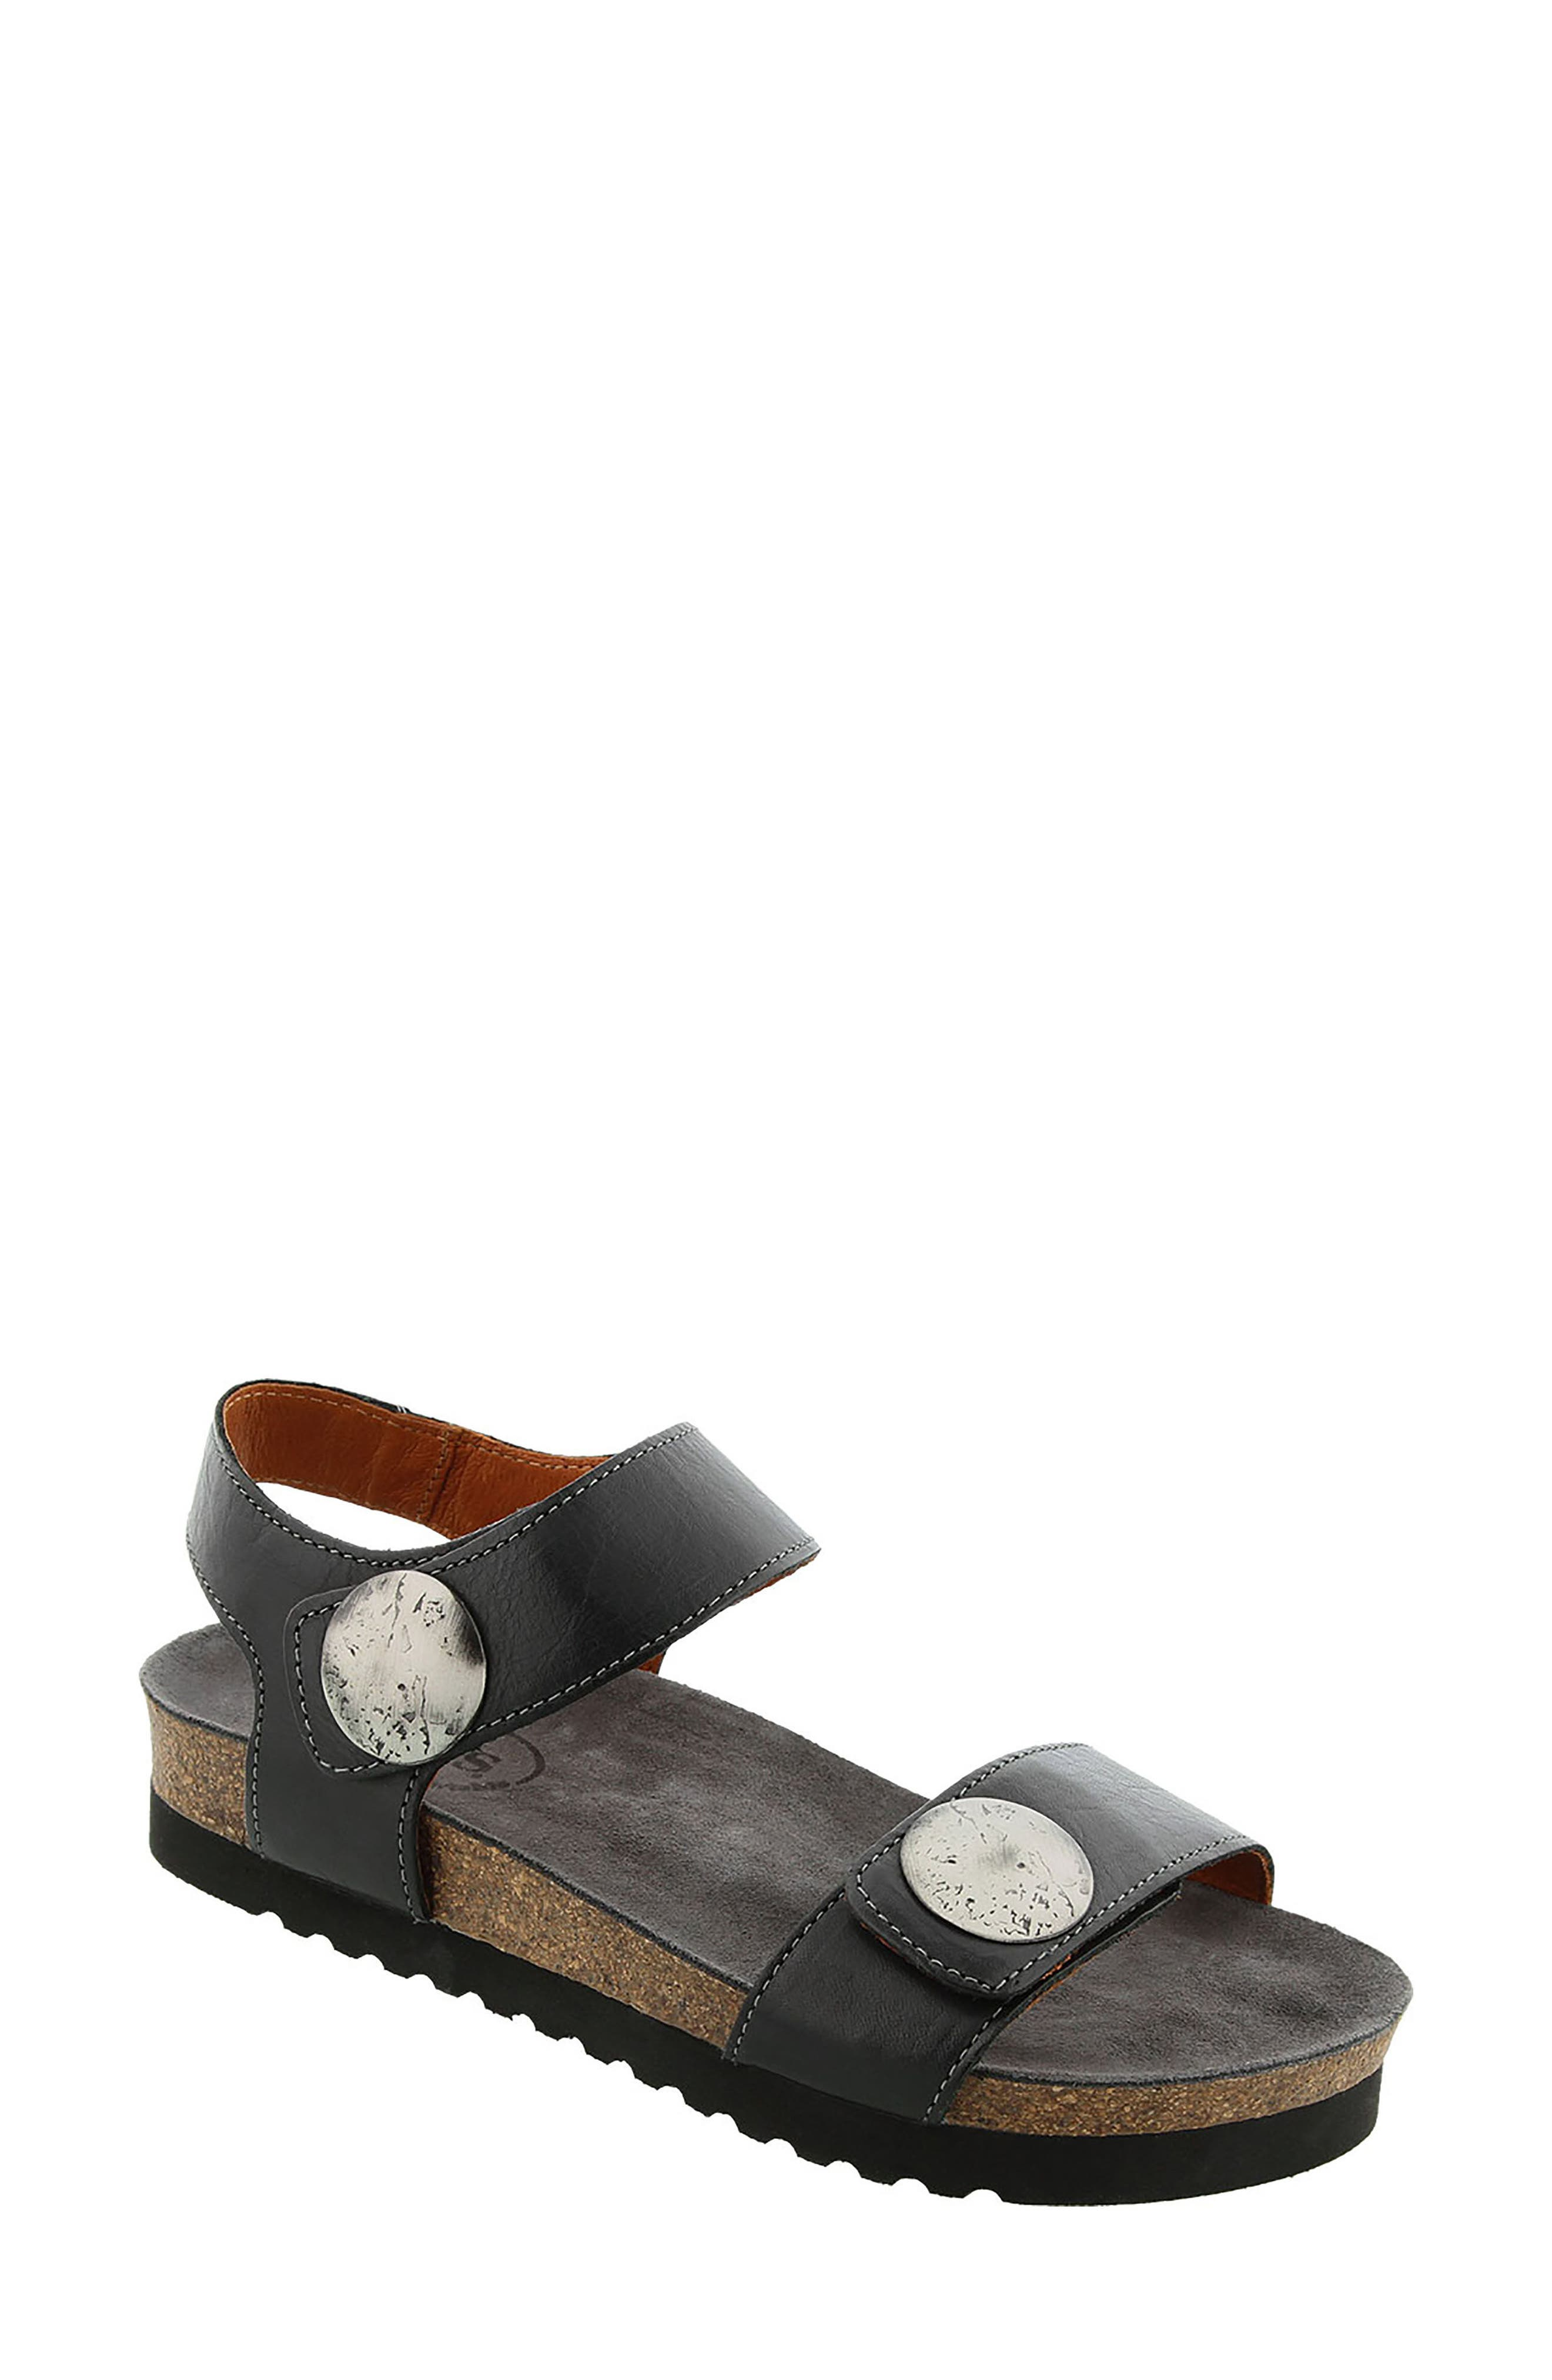 Luckie Sandal,                             Main thumbnail 1, color,